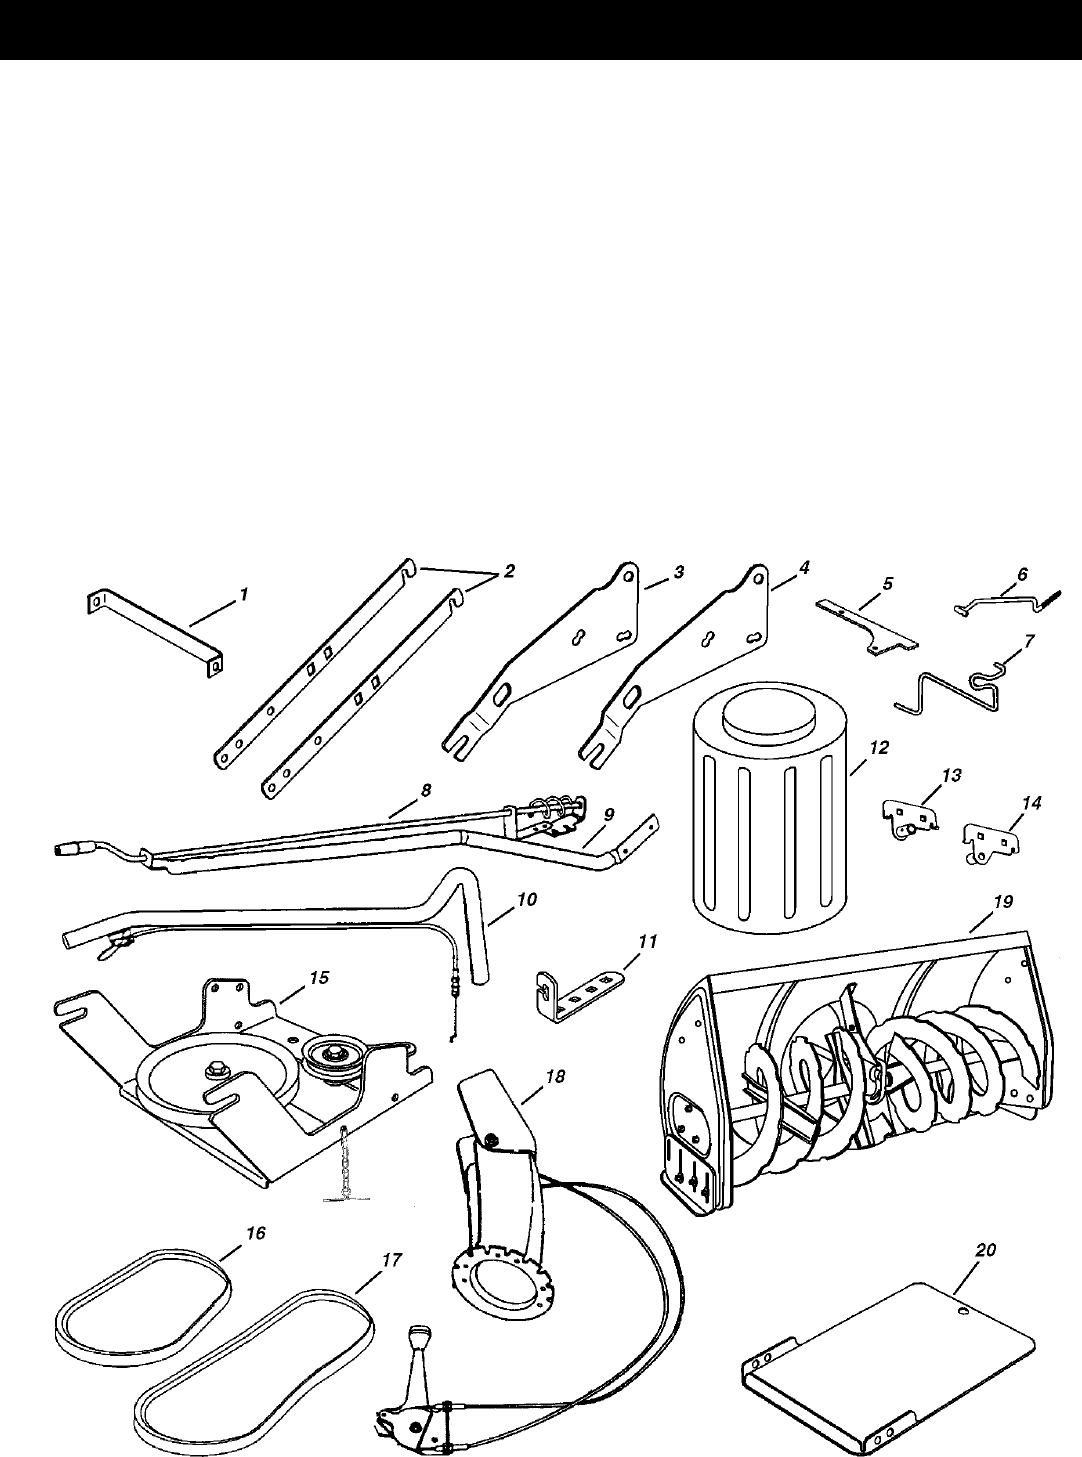 Page 5 of Sears Snow Blower 486.248392 User Guide